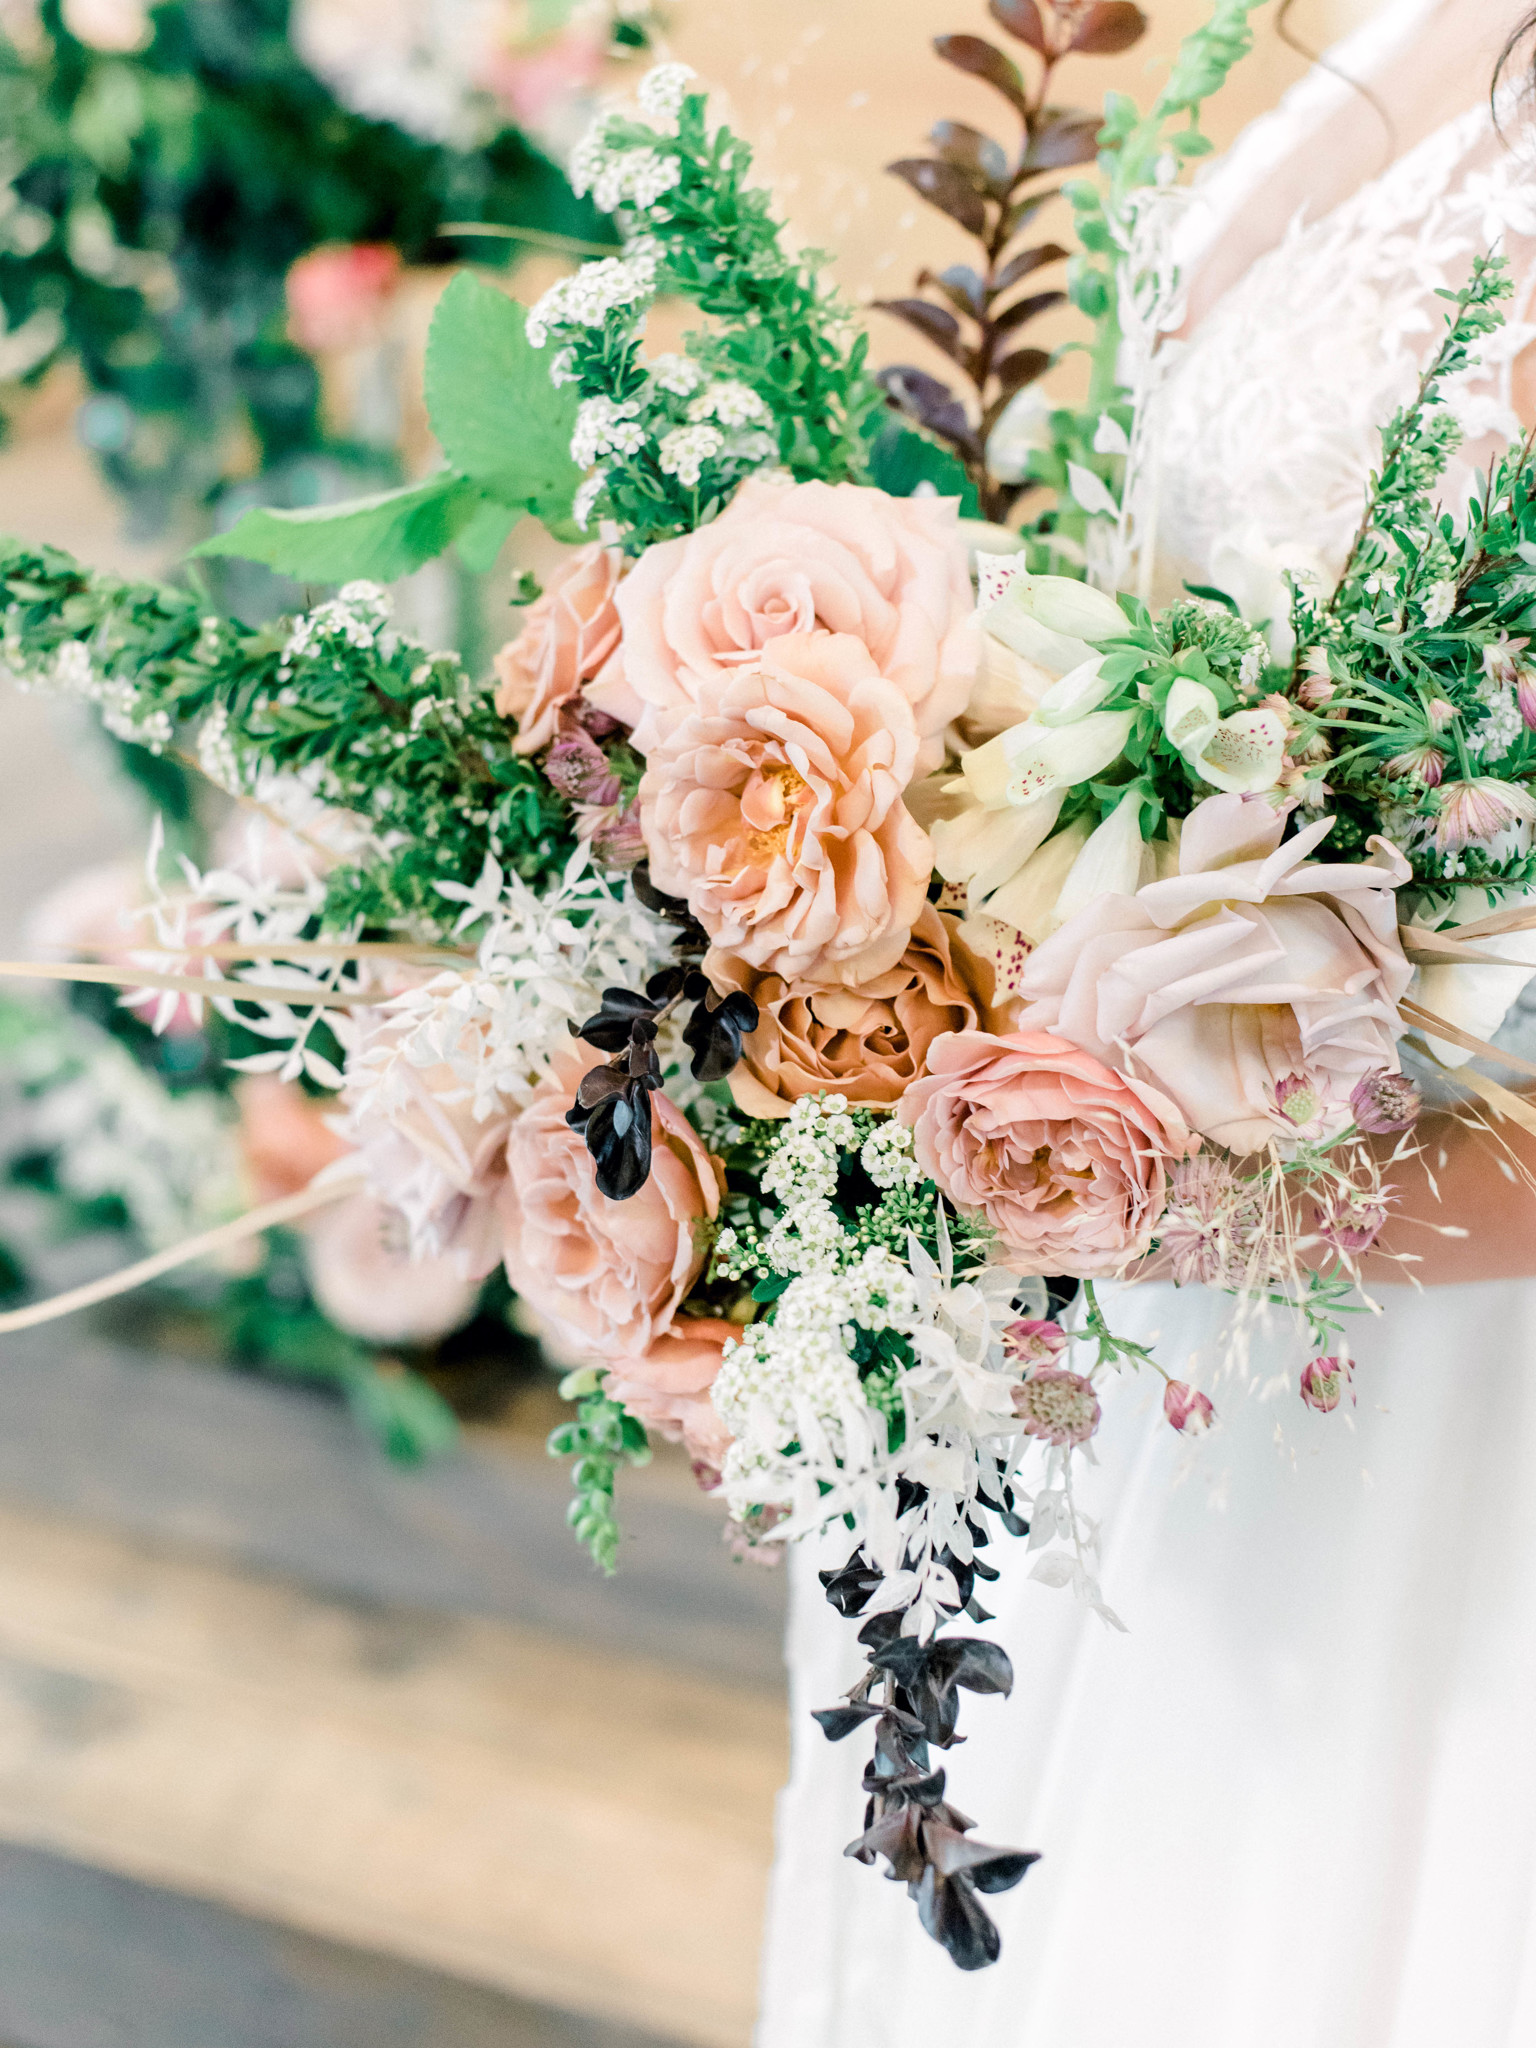 Romantic wedding bouquet: Whimsical mauve wedding inspiration on Alexa Kay Events. See more romantic wedding ideas at alexakayevents.com!